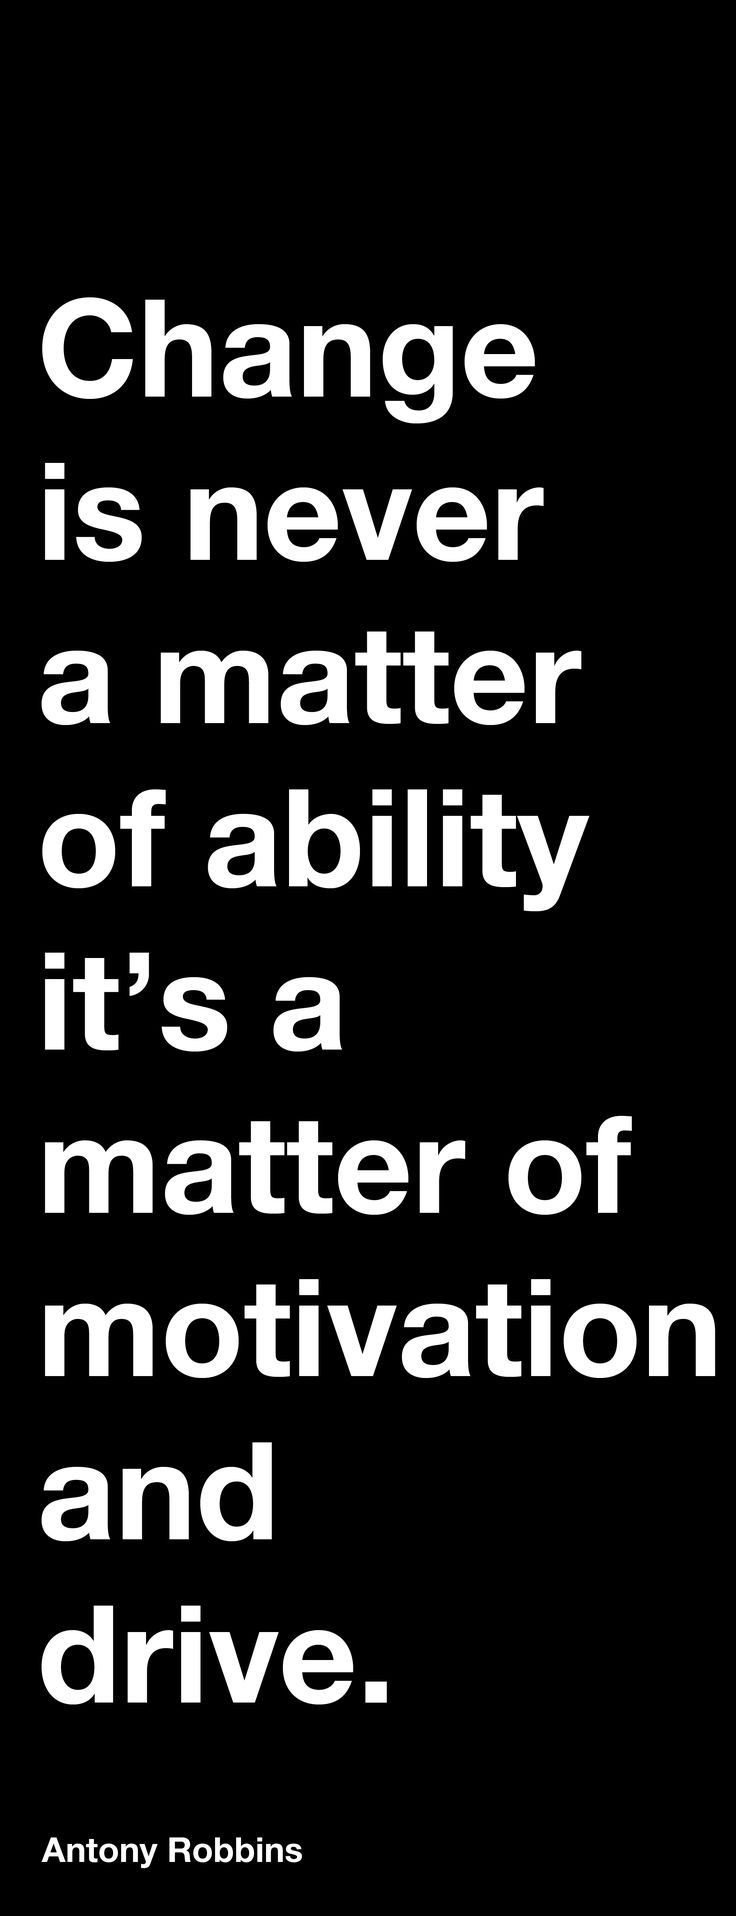 """Change is never a matter of ability it's a matter of motivation and drive"". Anthony Robbins"